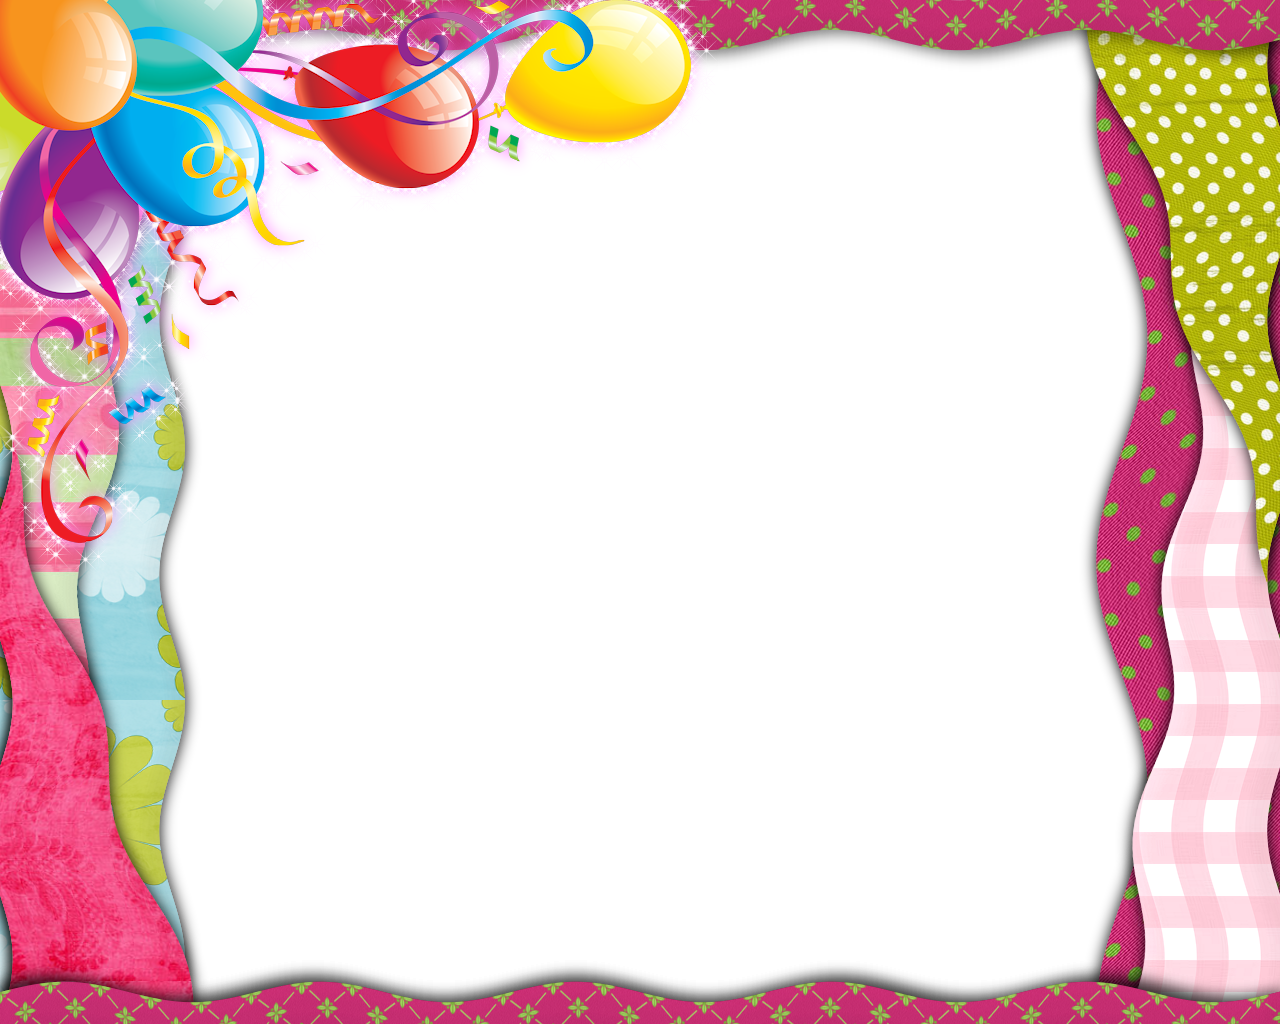 Birthday frames and borders png. Border google search clipart